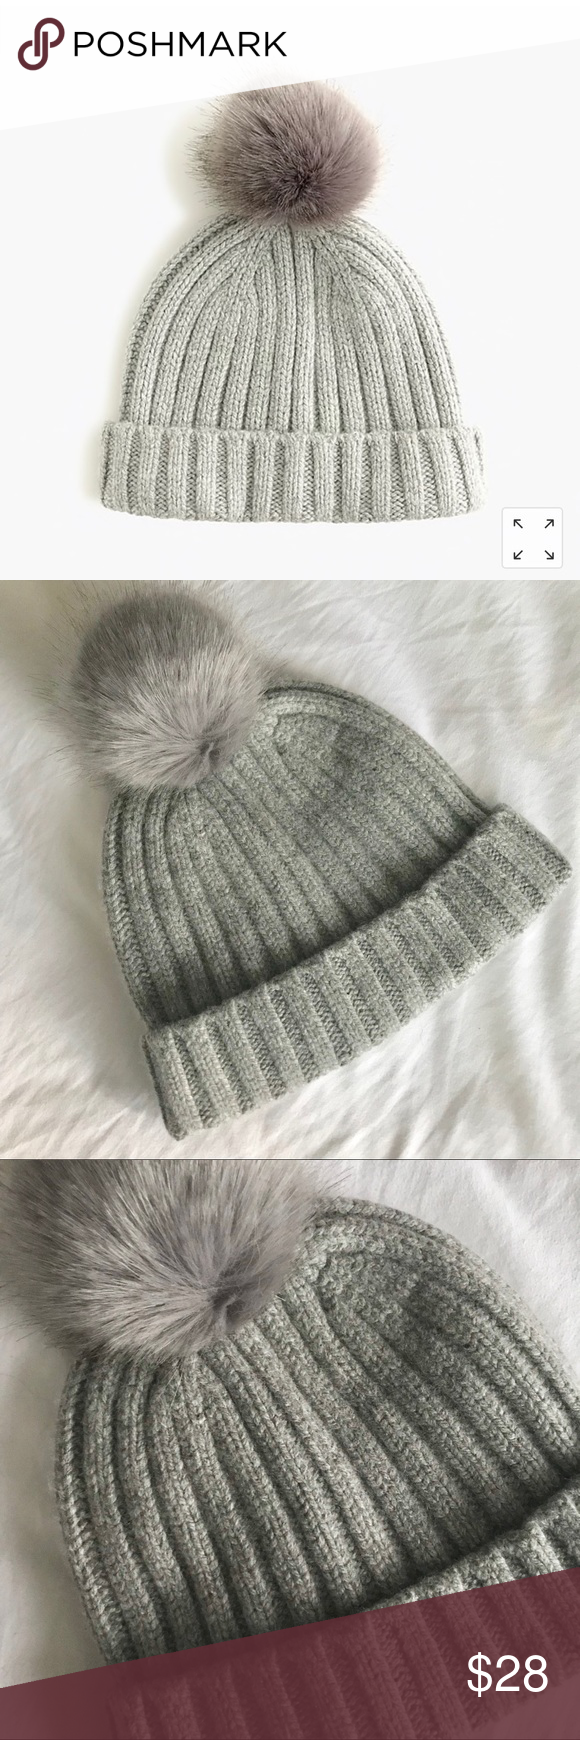 b19f75d32e0 J. Crew Grey Ribbed Beanie with Faux Fur Pom Pom Ribbed beanie with faux  fur pom pom from J. Crew in the color Heather Grey. New with tags